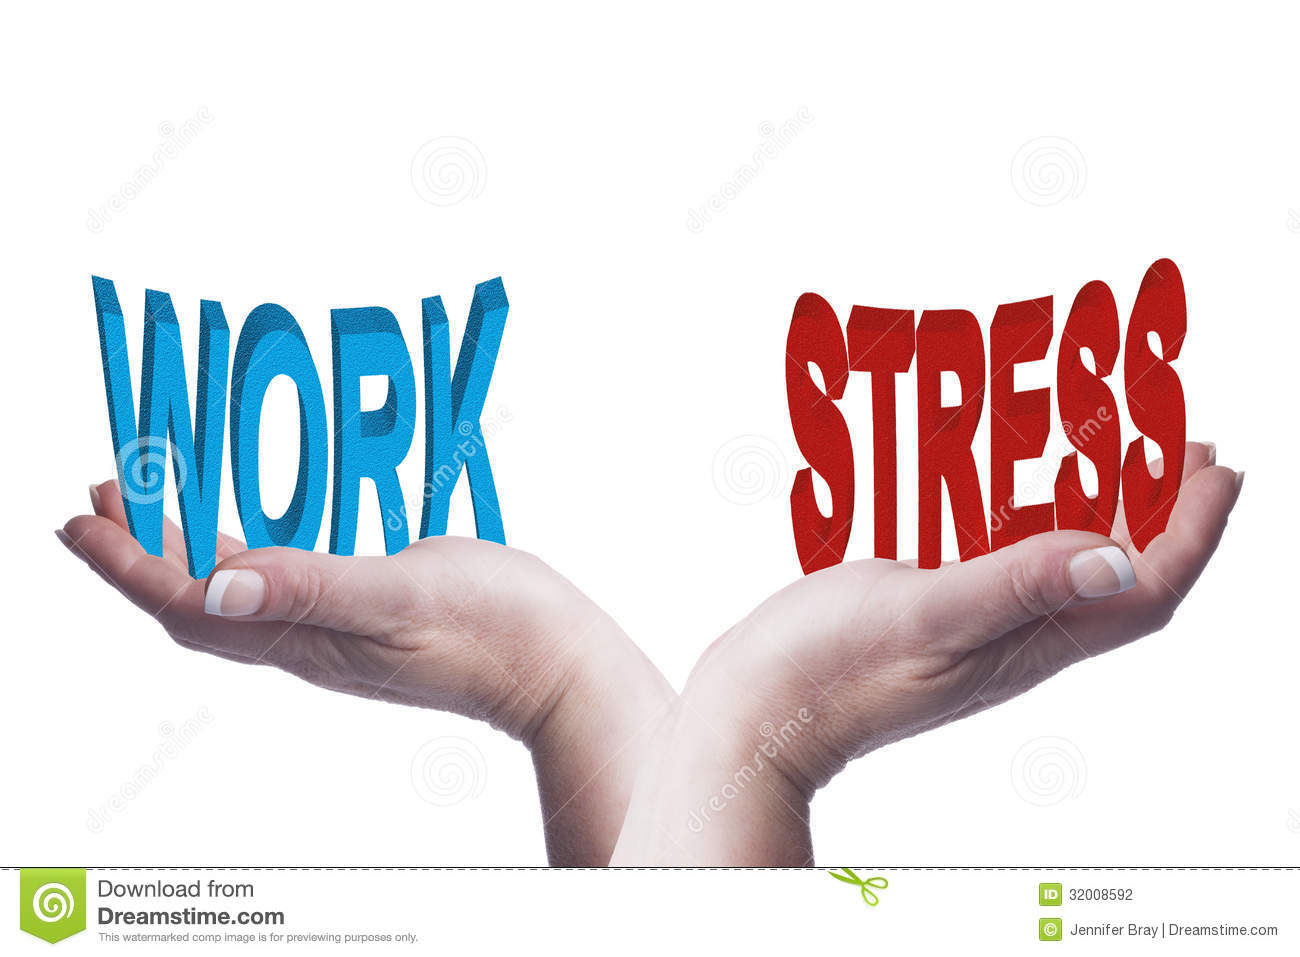 Female Hands Balancing Work And Stress 3D Words Conceptual Image Stock ...